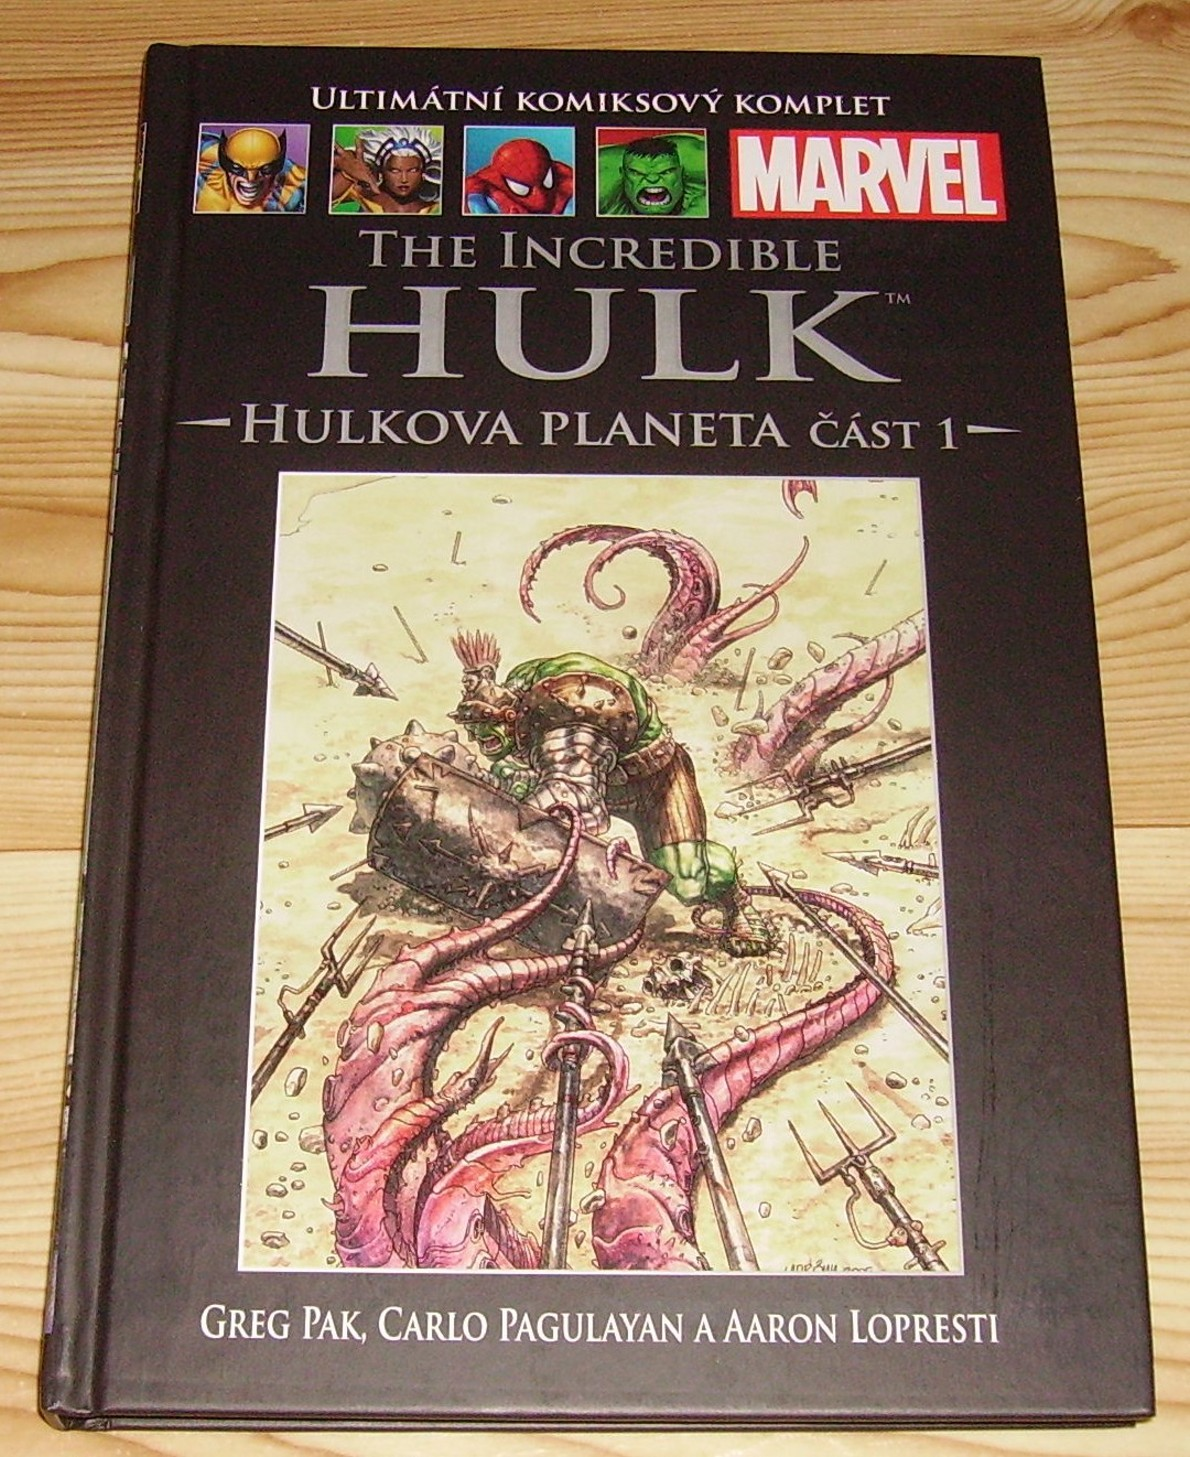 The Incredible Hulk: Hulkova planeta, část 1 (049)